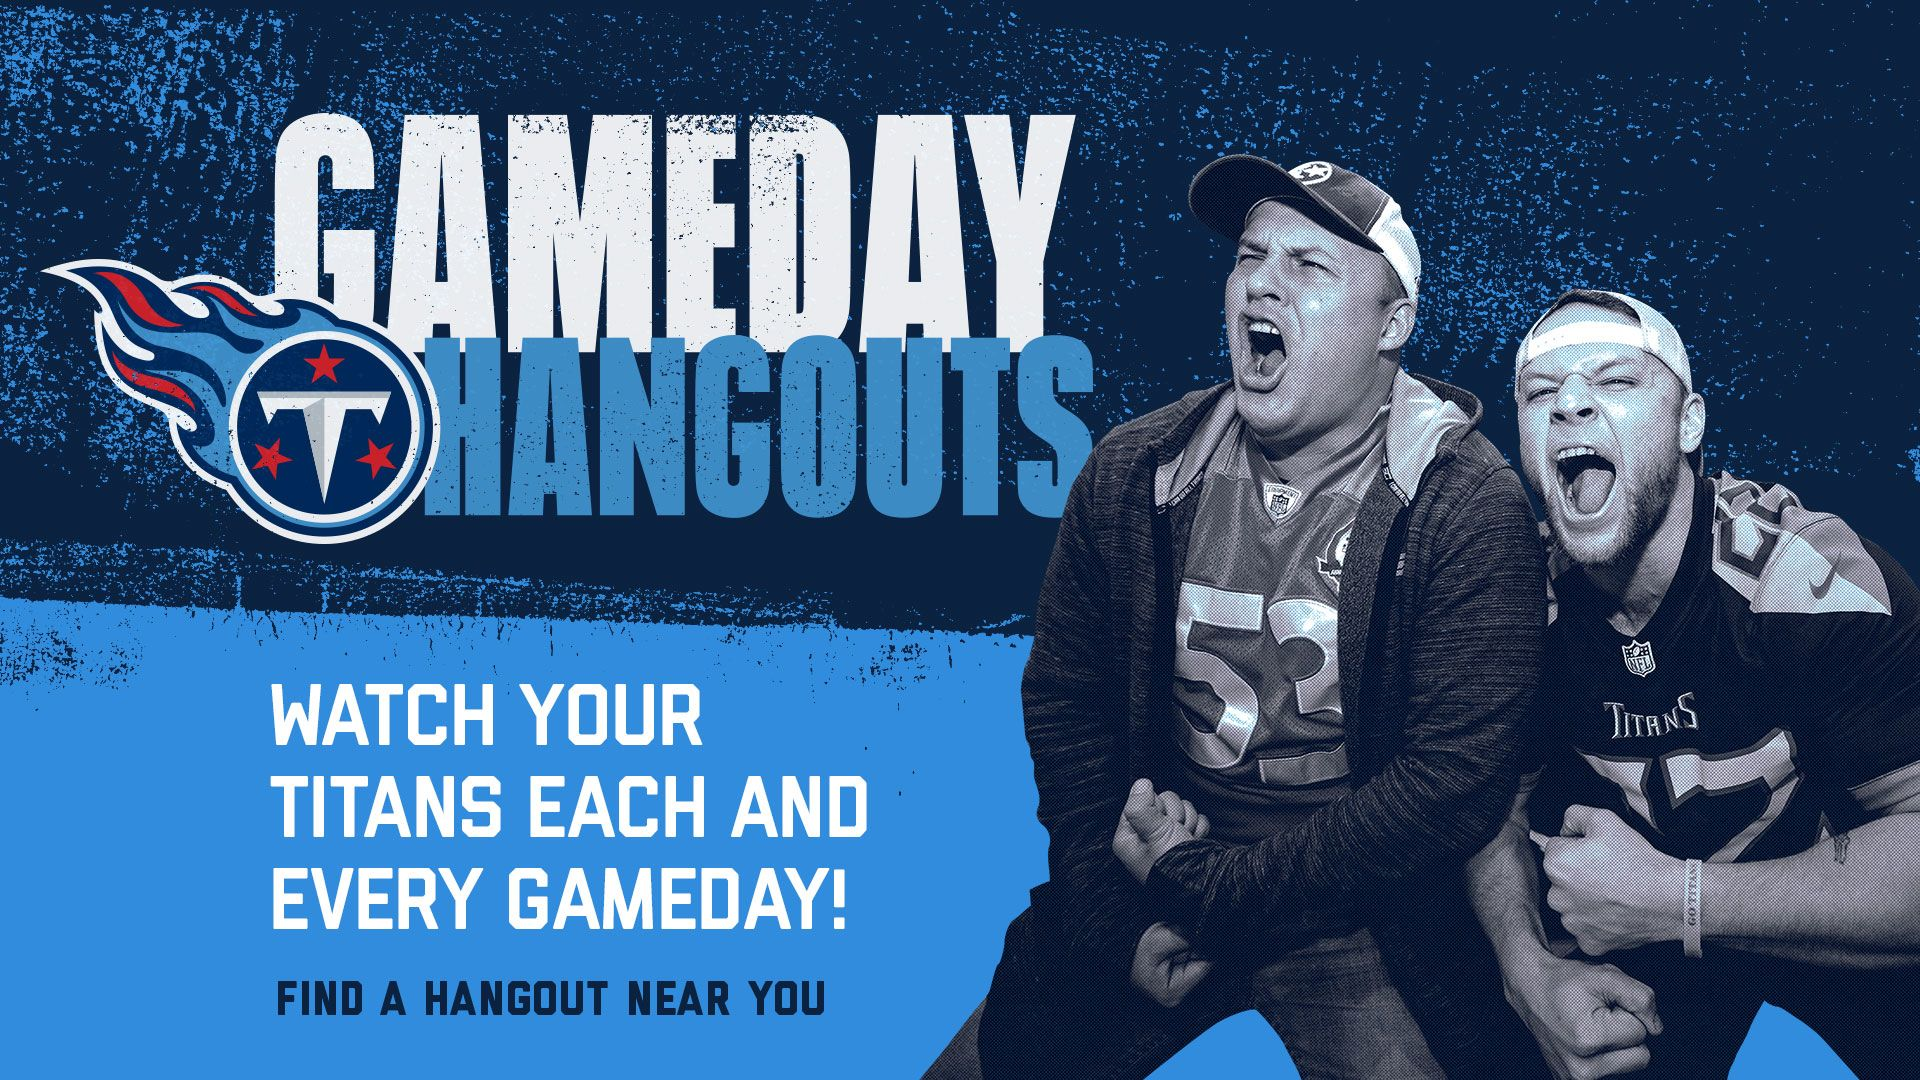 Want to watch the Titans game with other Titans fans?